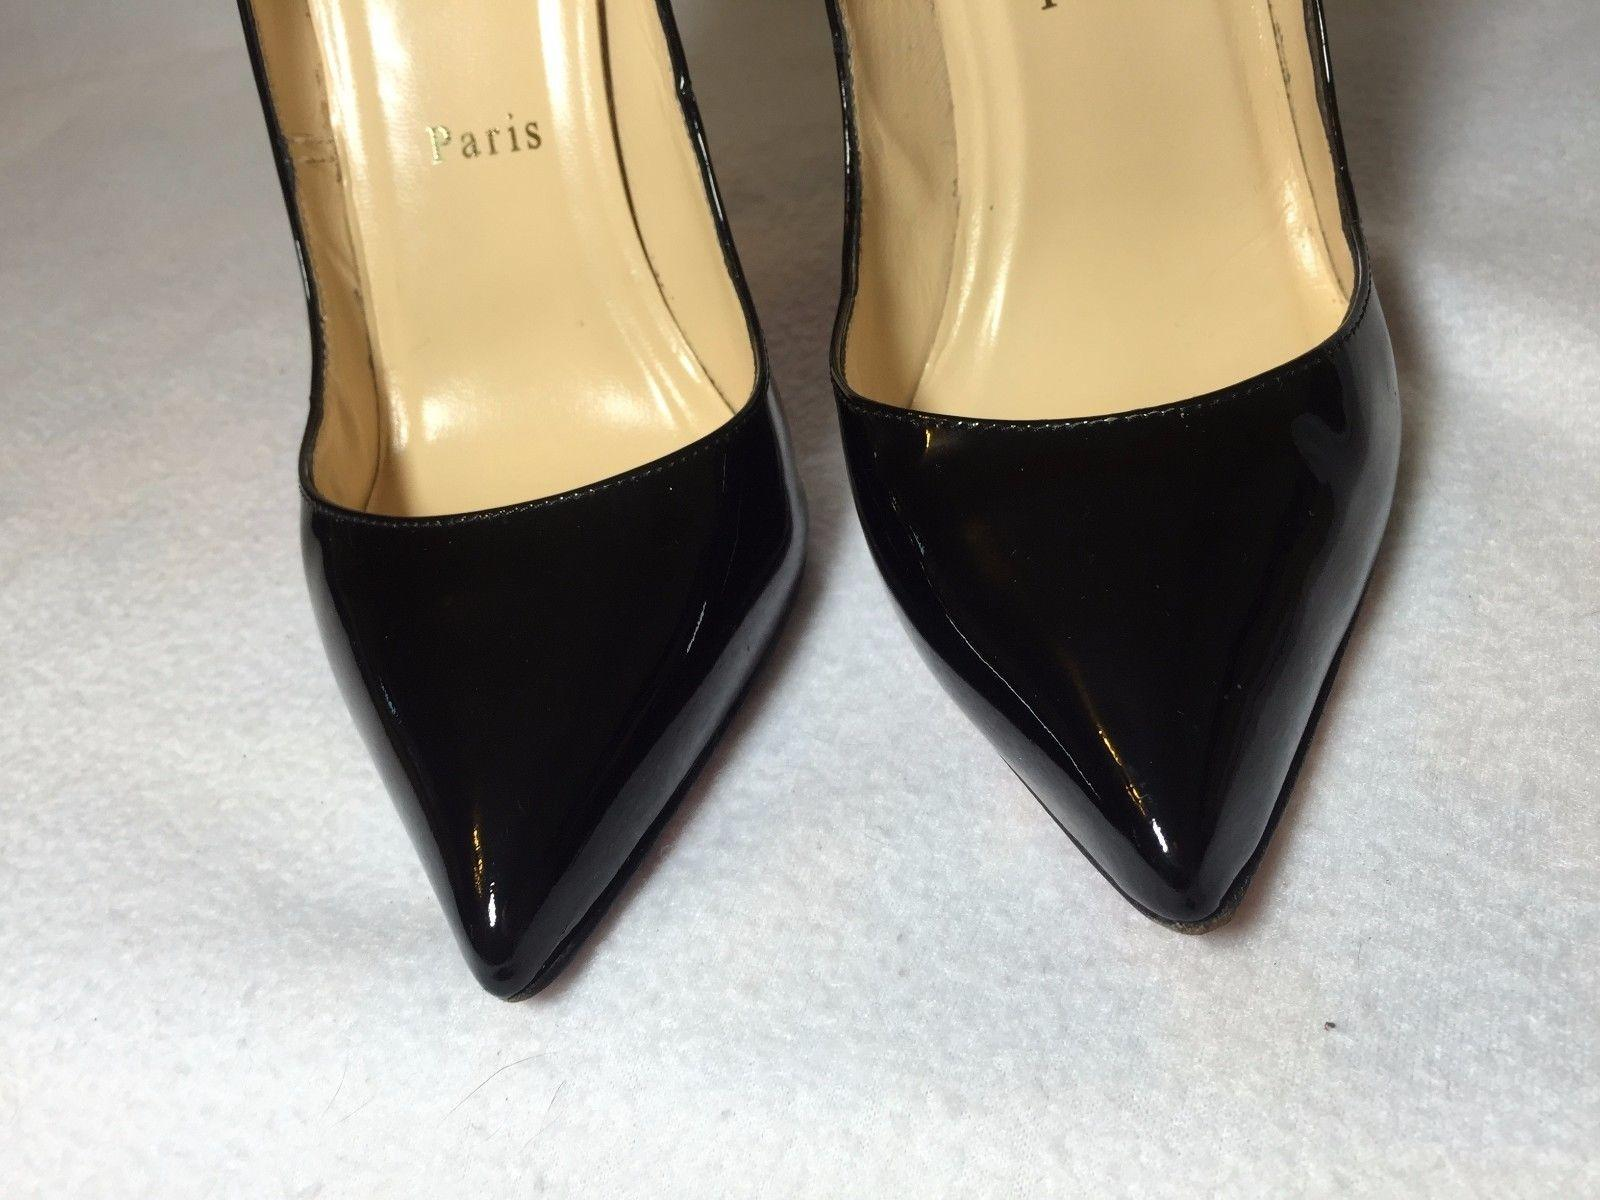 83922a3a07ba ... Christian Louboutin Black Pigalle Pigalle Pigalle 120 Patent Leather  Euro 38   Pumps Size US 8 ...